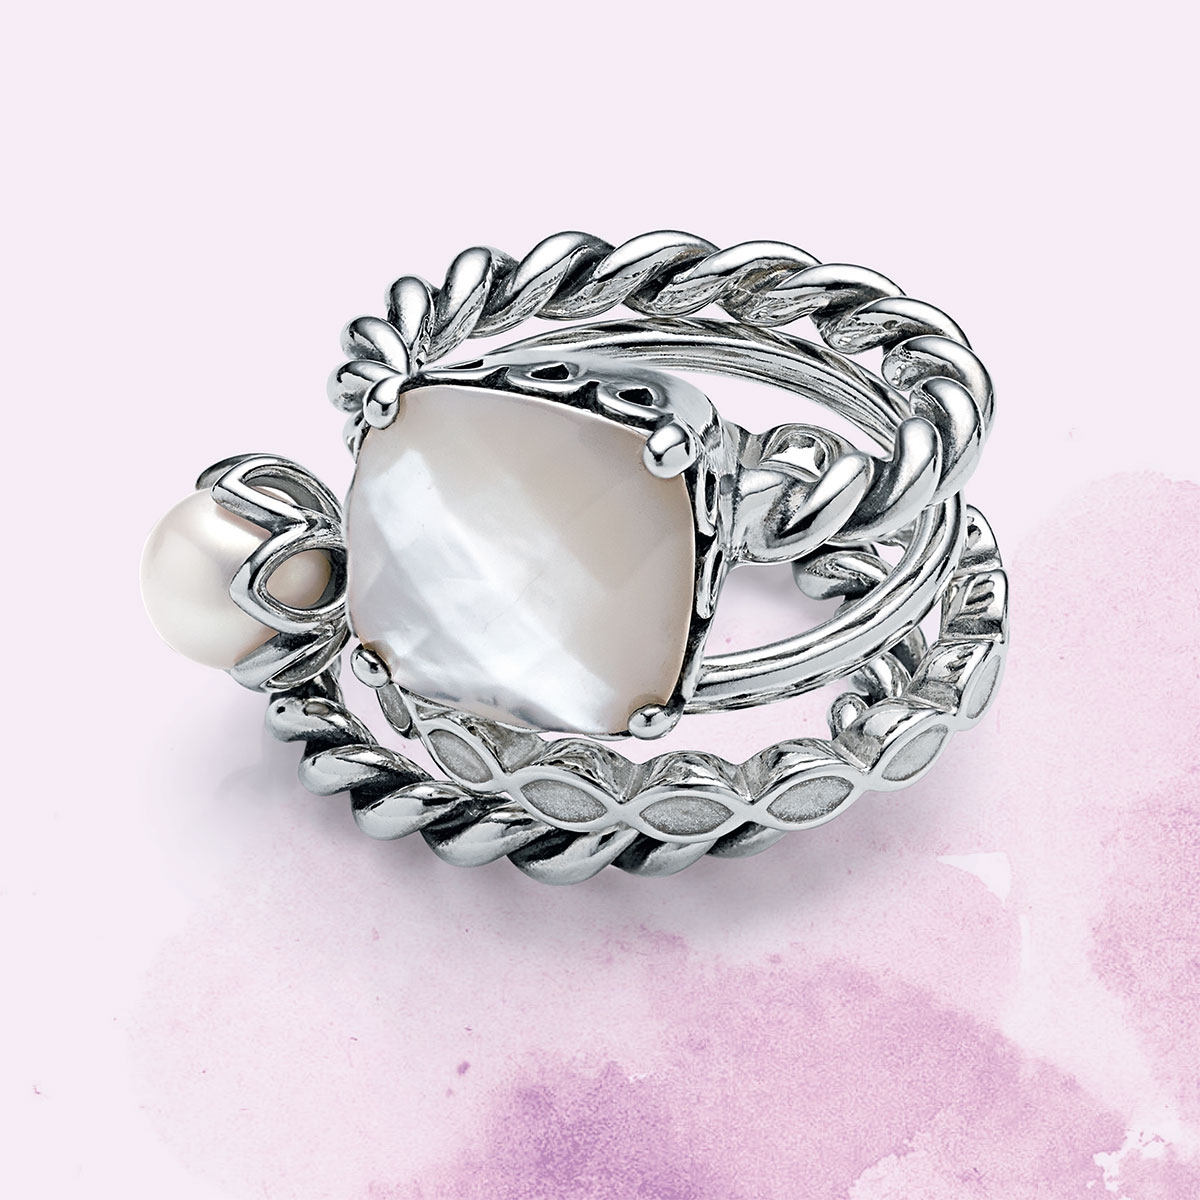 1ab49bb54 ... sincerity ring mother of pearl Crown Silver White Pearl Rings 925 Ale  Sterling Silver Rings Fashion Rings Silver Jewelry Rings for Pandora ...